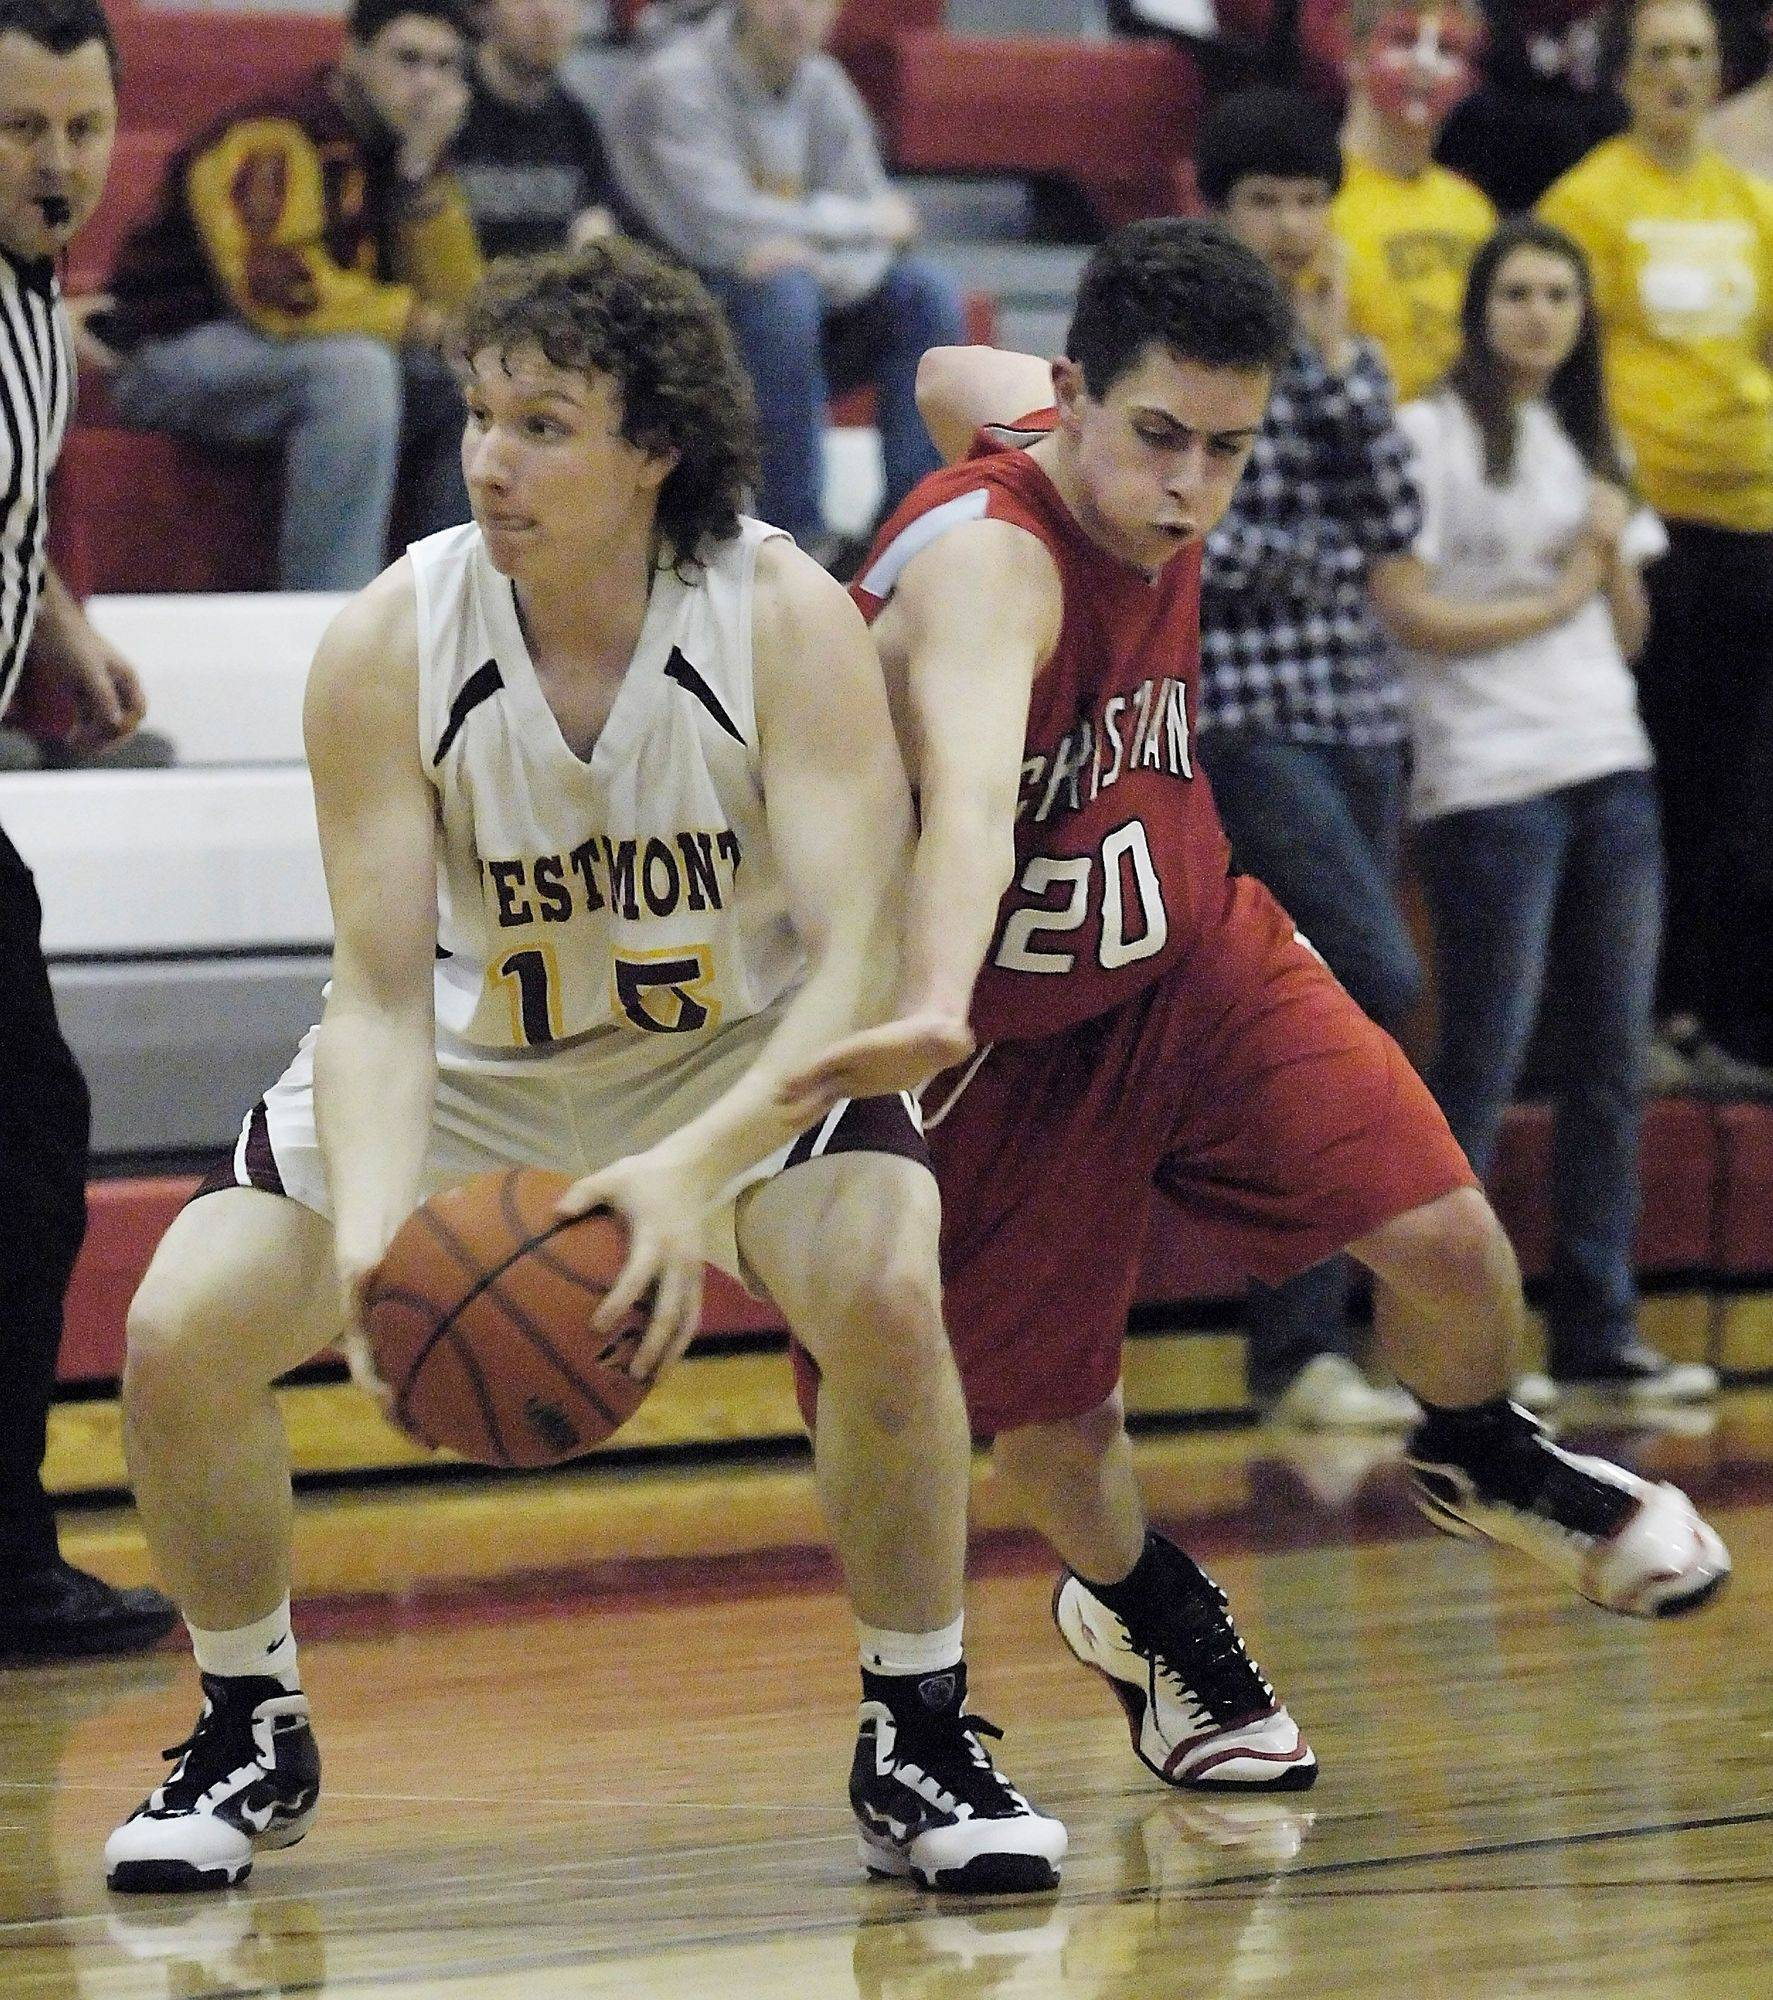 Aurora Christian's Josh Haugen tries to steal the ball from Westmont's Kevin Good.